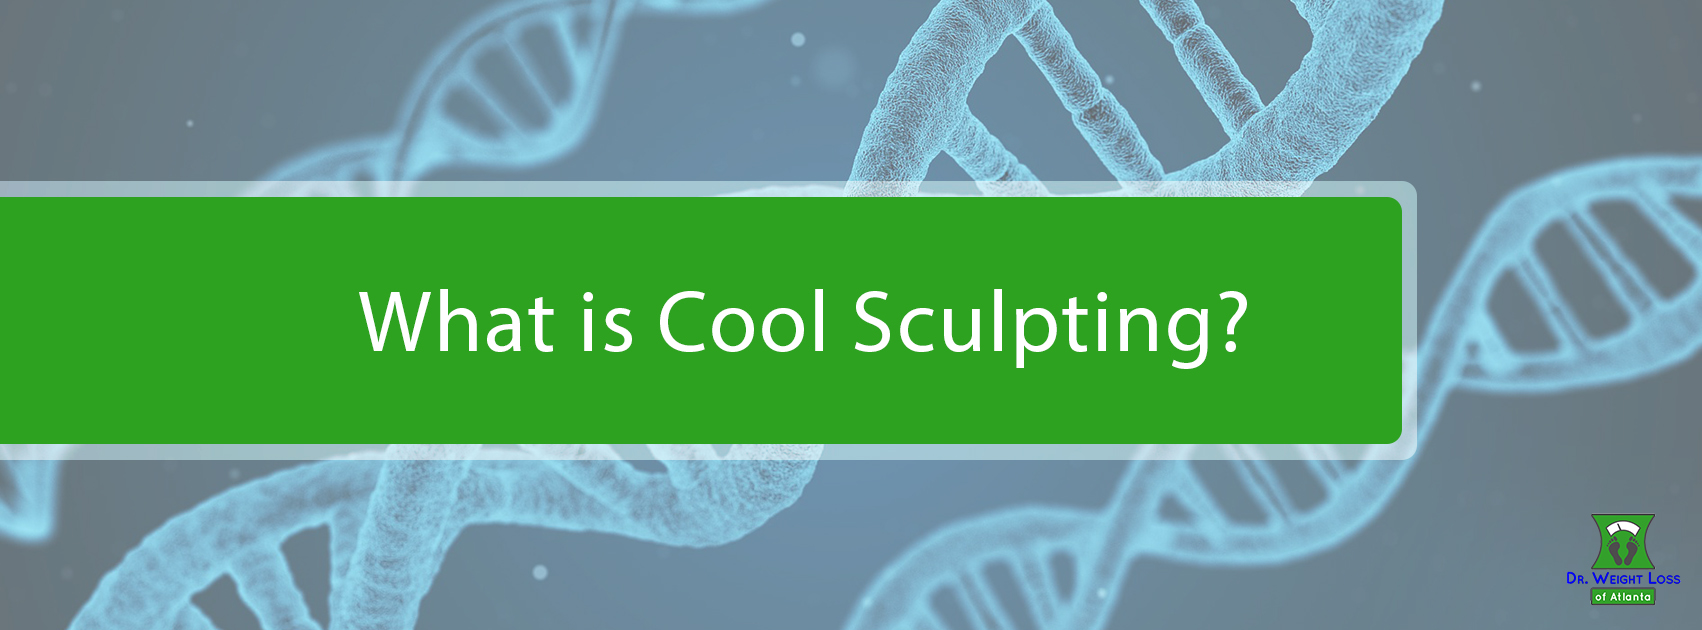 What Is Cool Sculpting